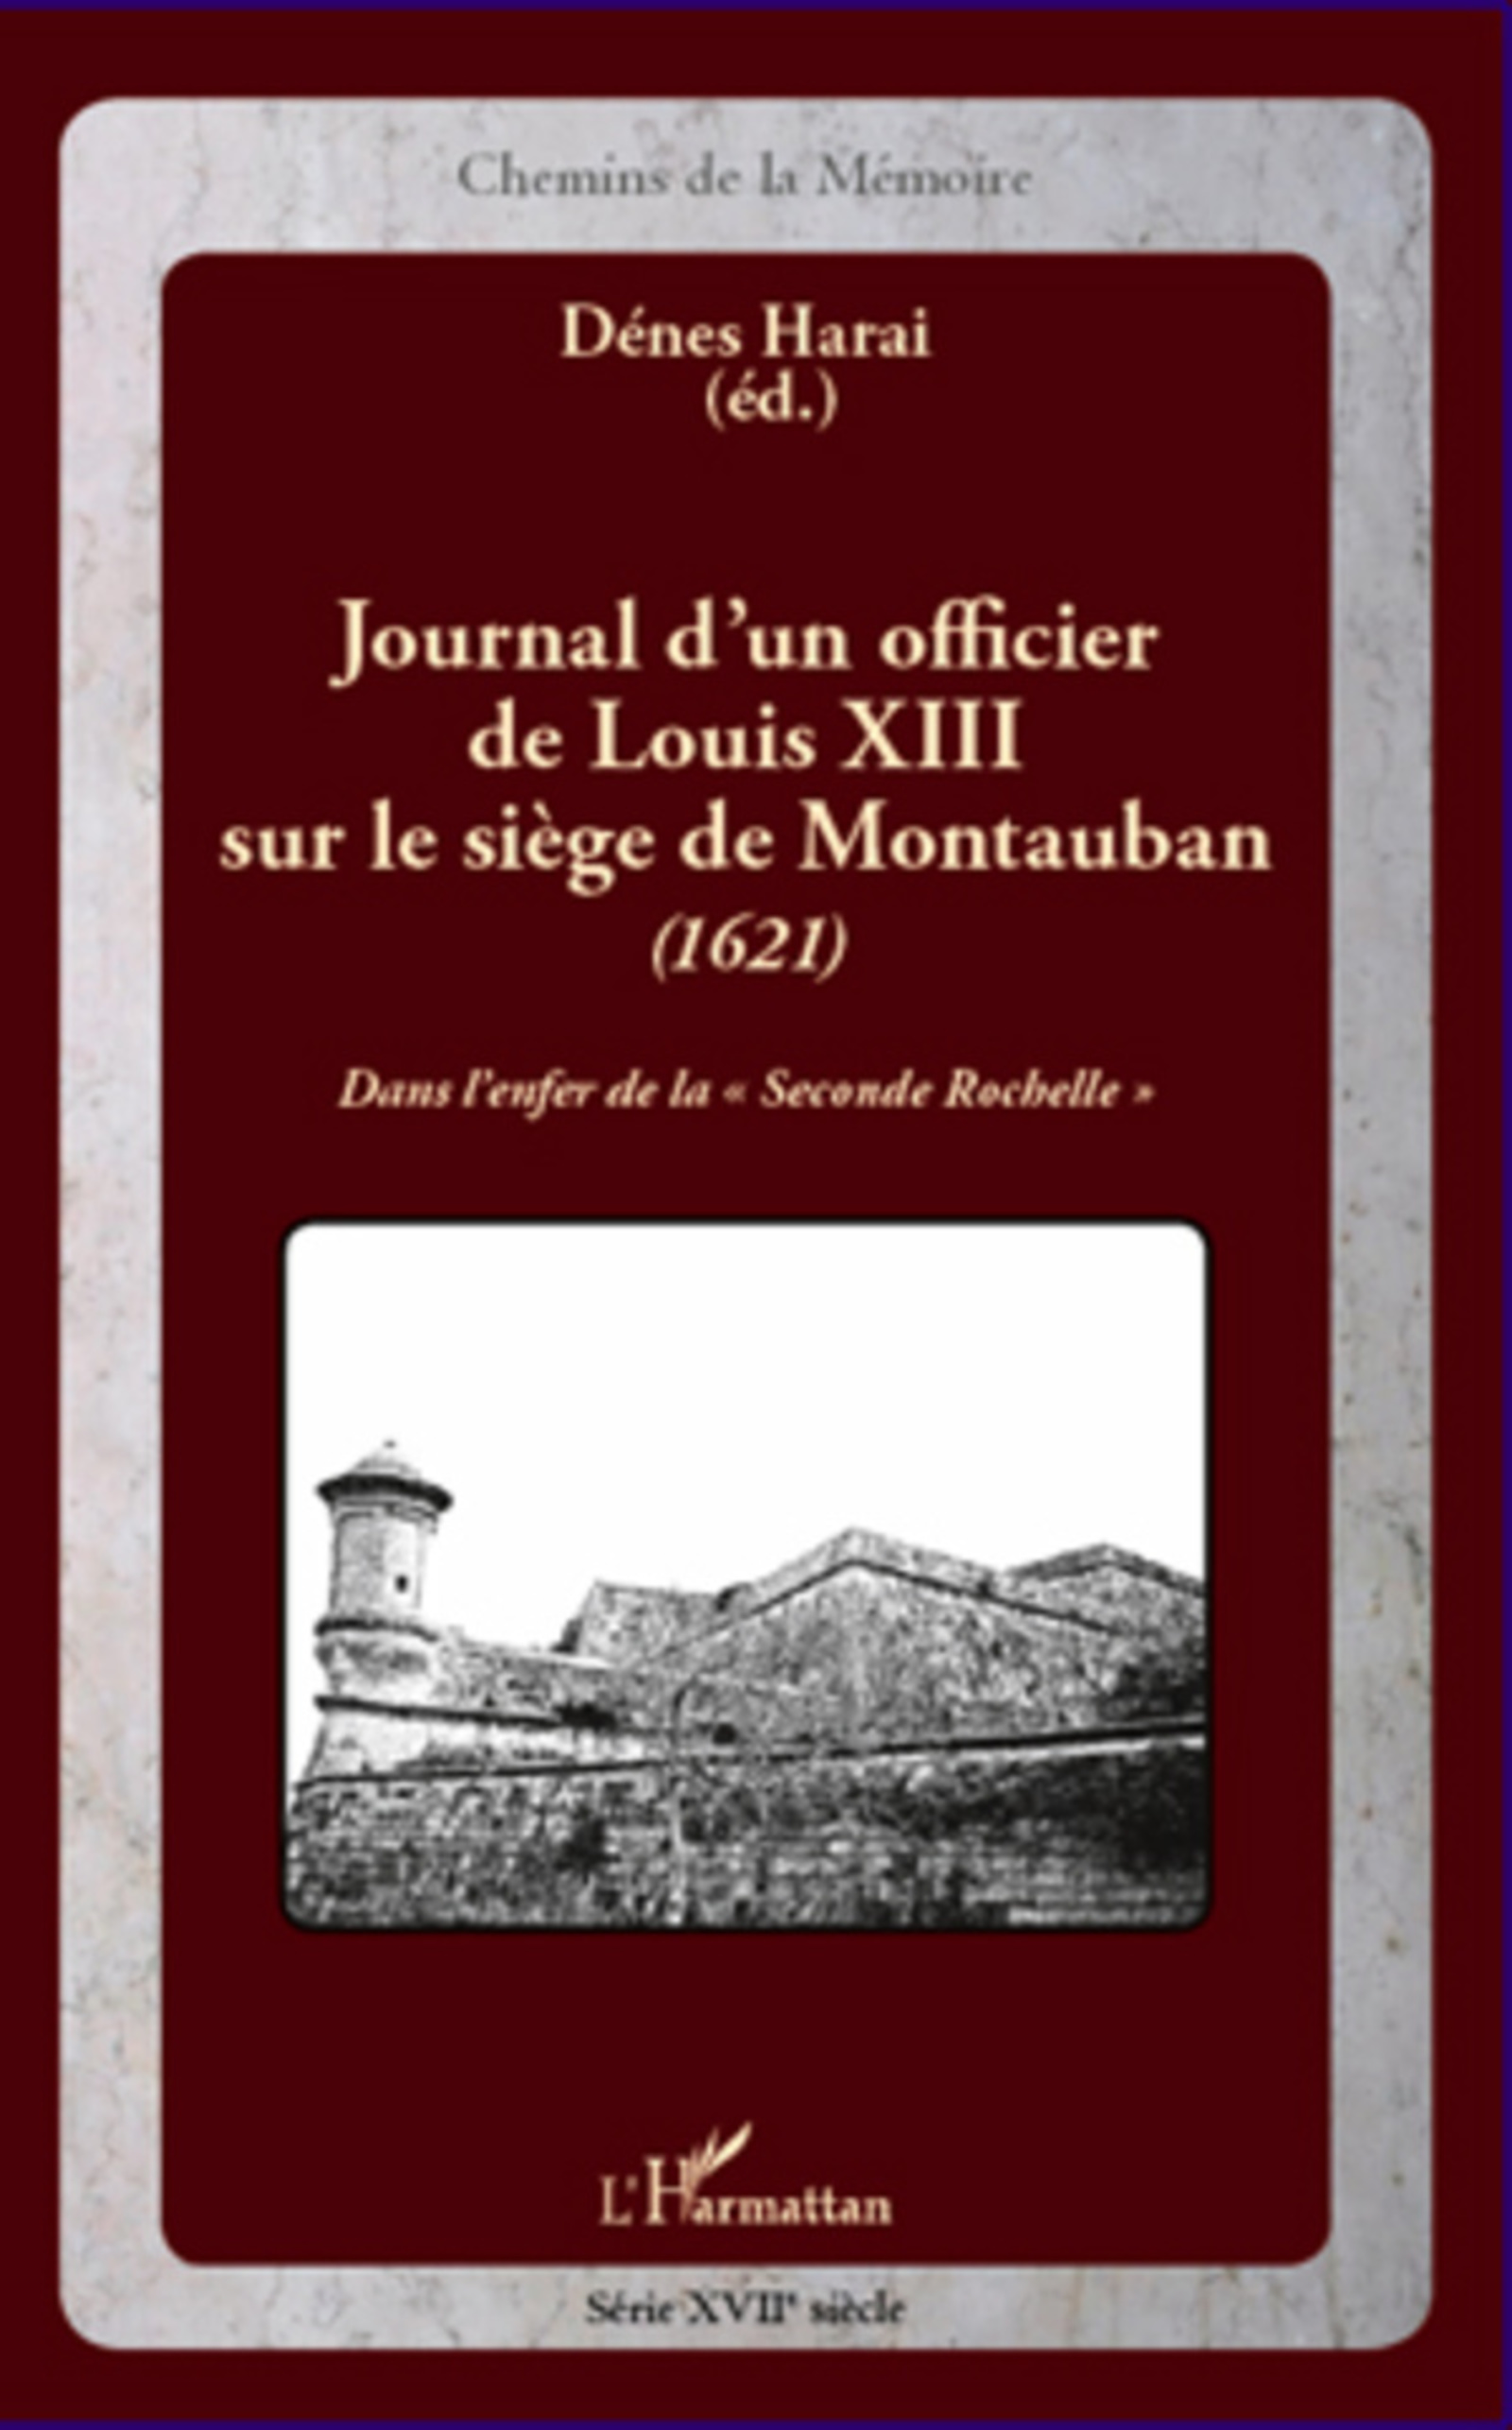 Journal d'un officier de Louis XIII